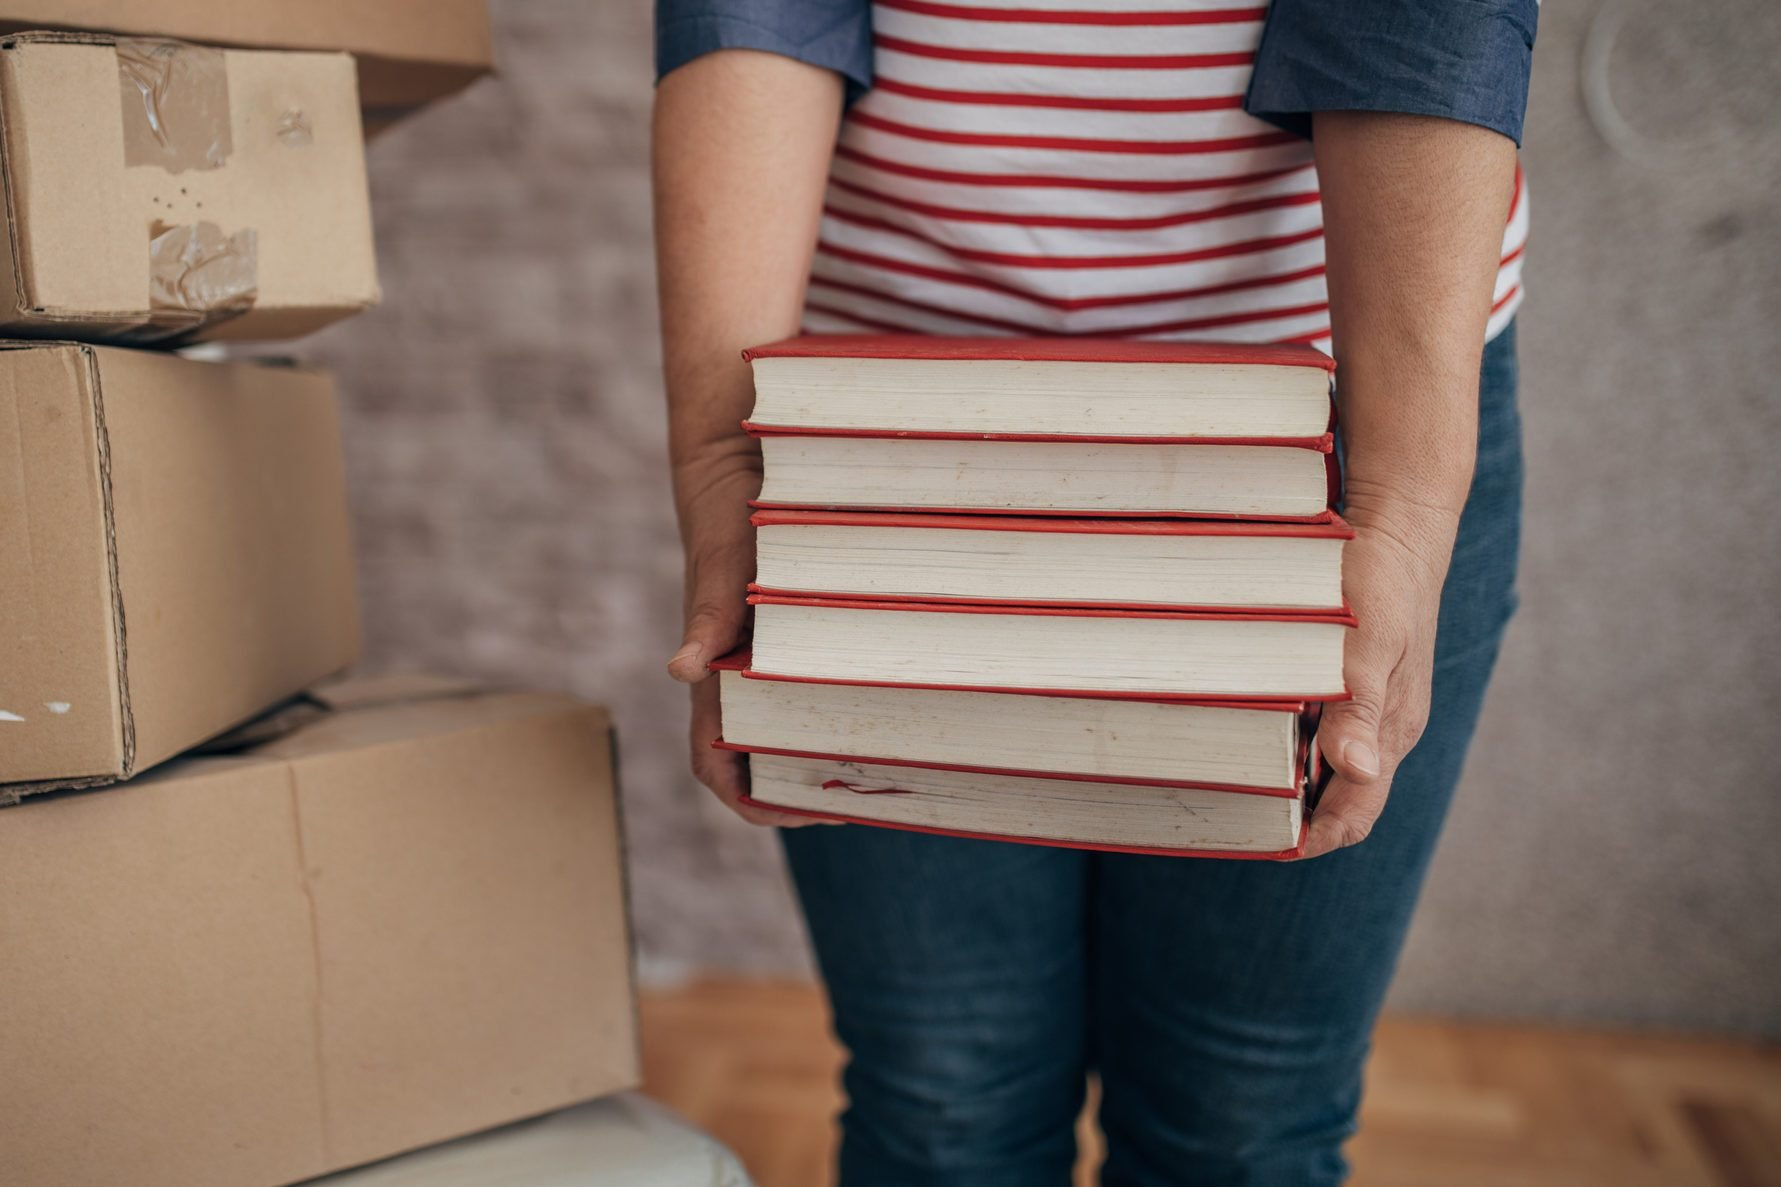 the woman moves into the apartment, carries her books